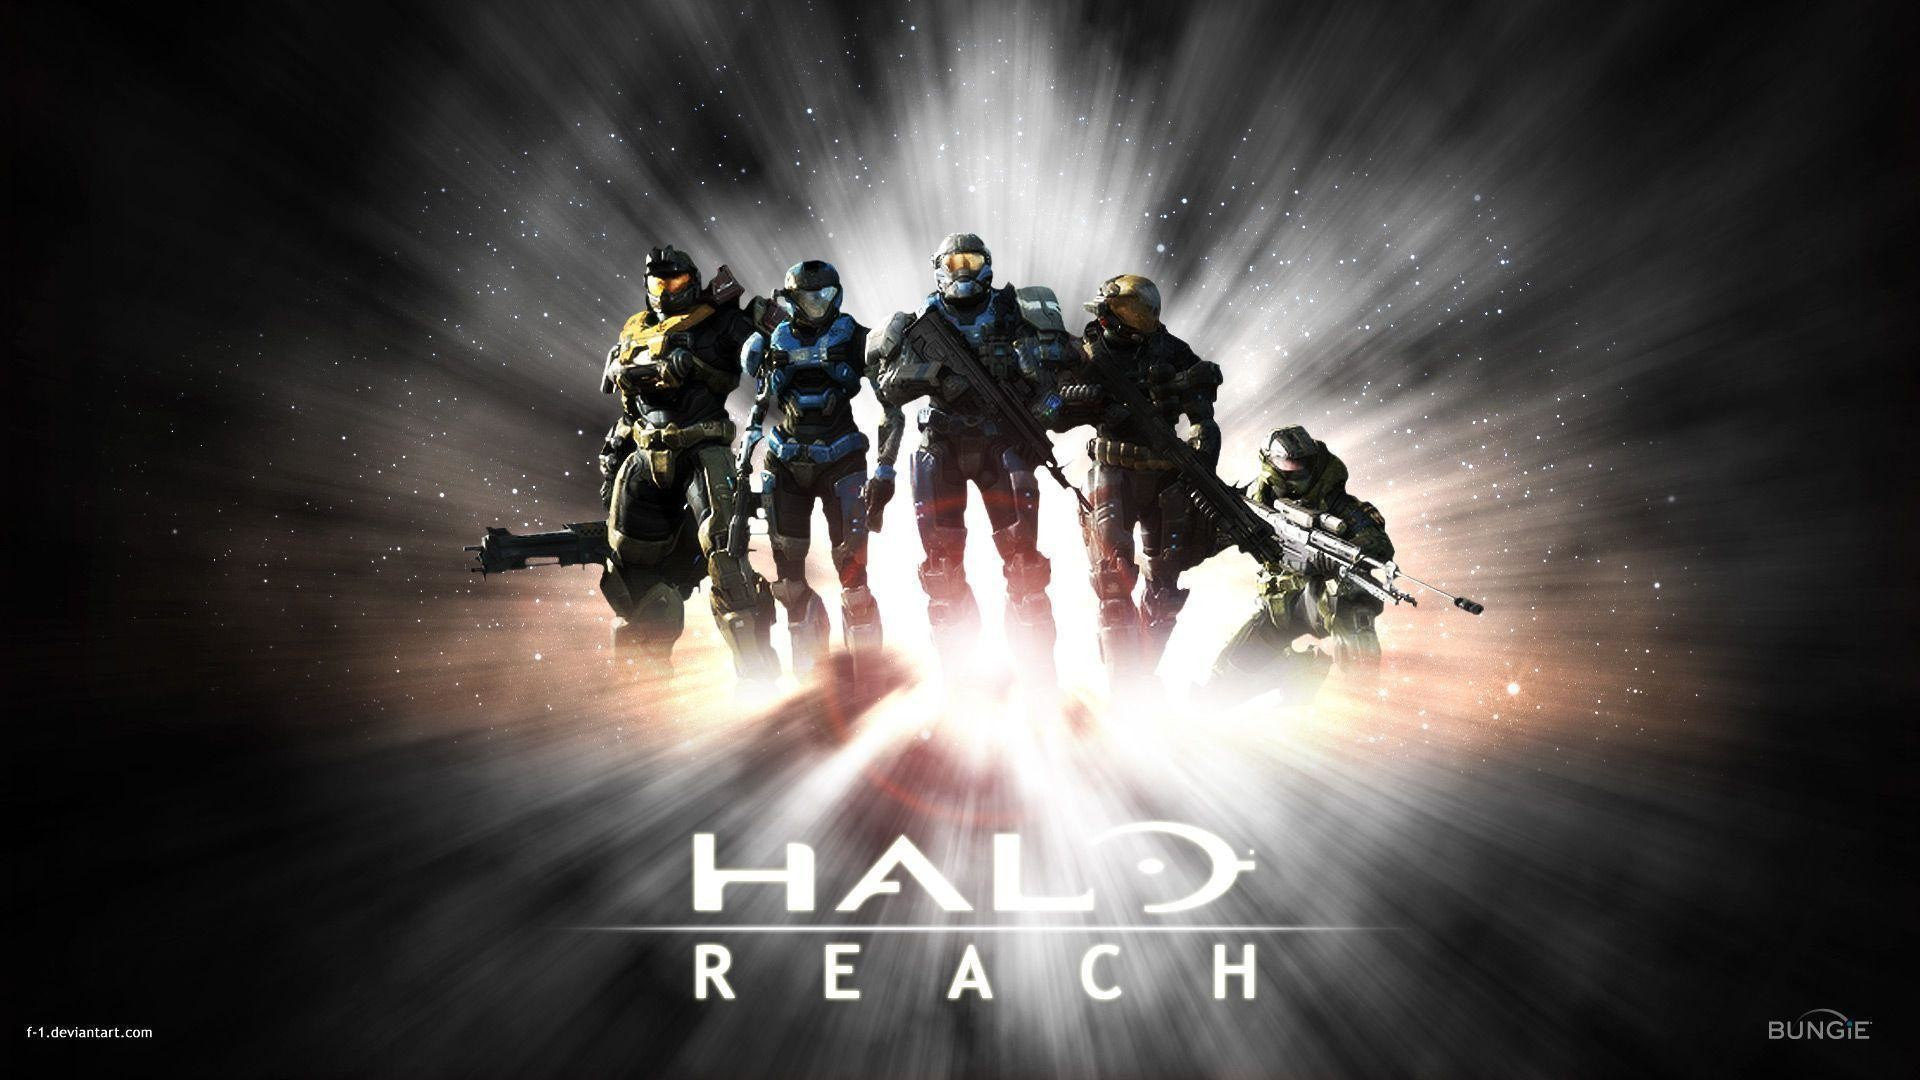 Halo Reach Wallpapers Hd Wallpaper Collections